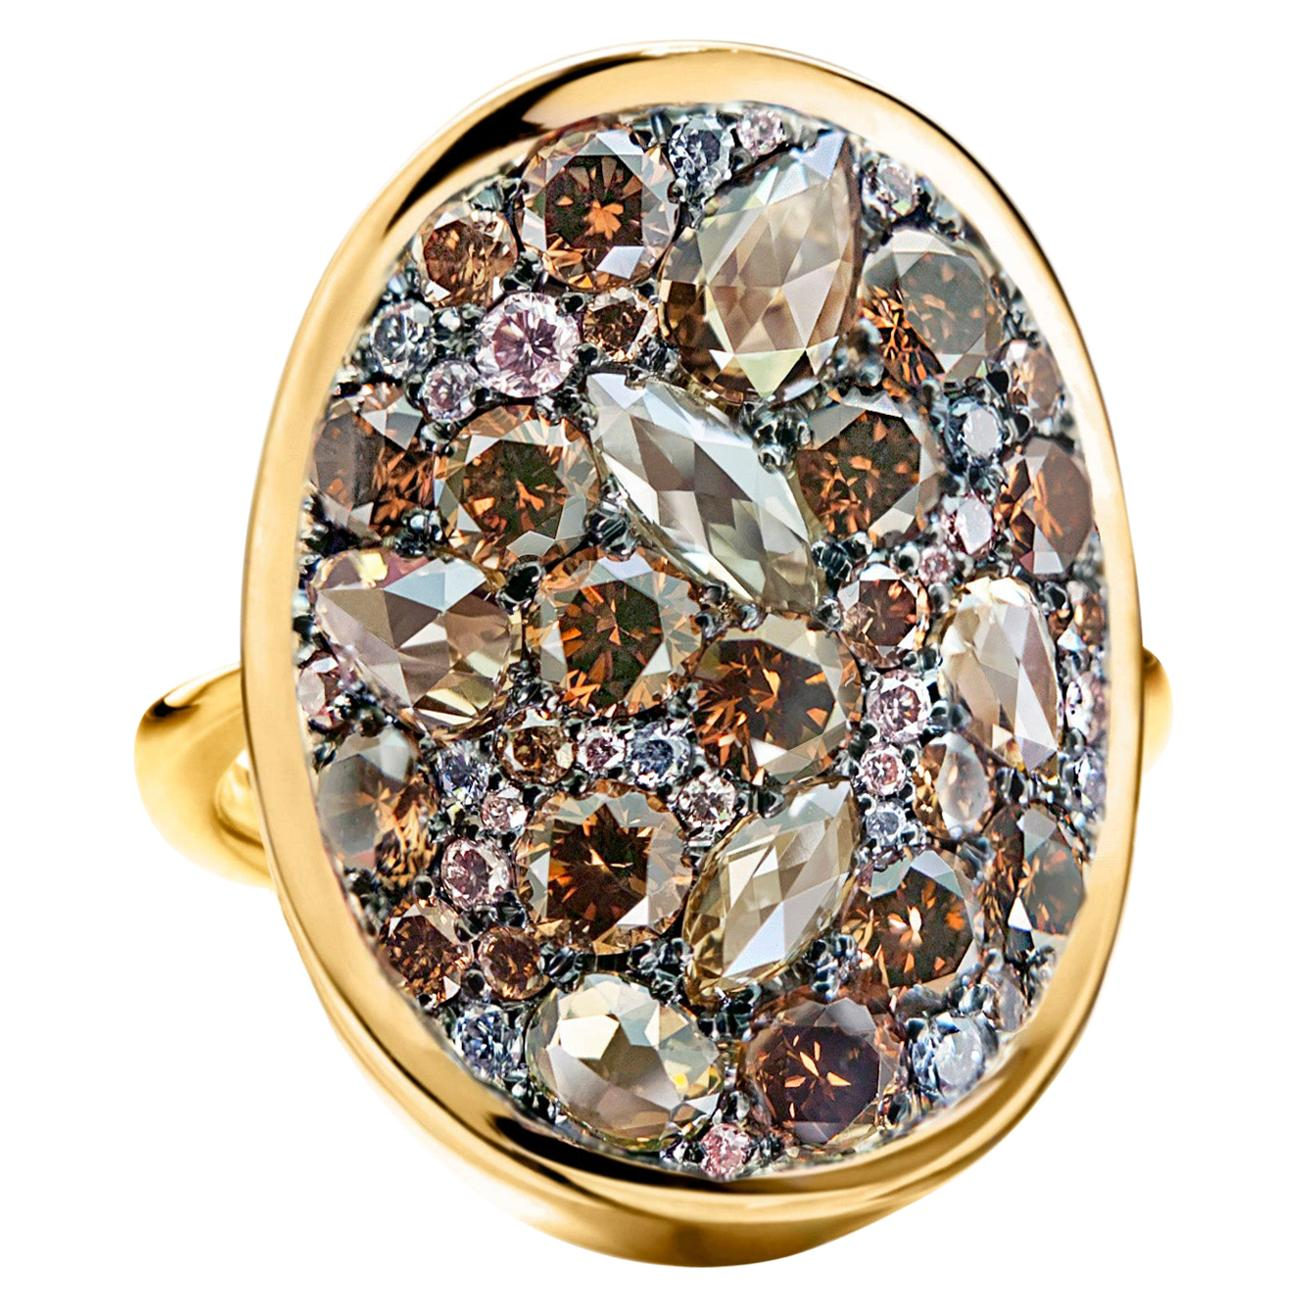 Joke Quick 3.45 Carat Fancy Chocolate Brown, Pink and Blue Diamond Pave Ring